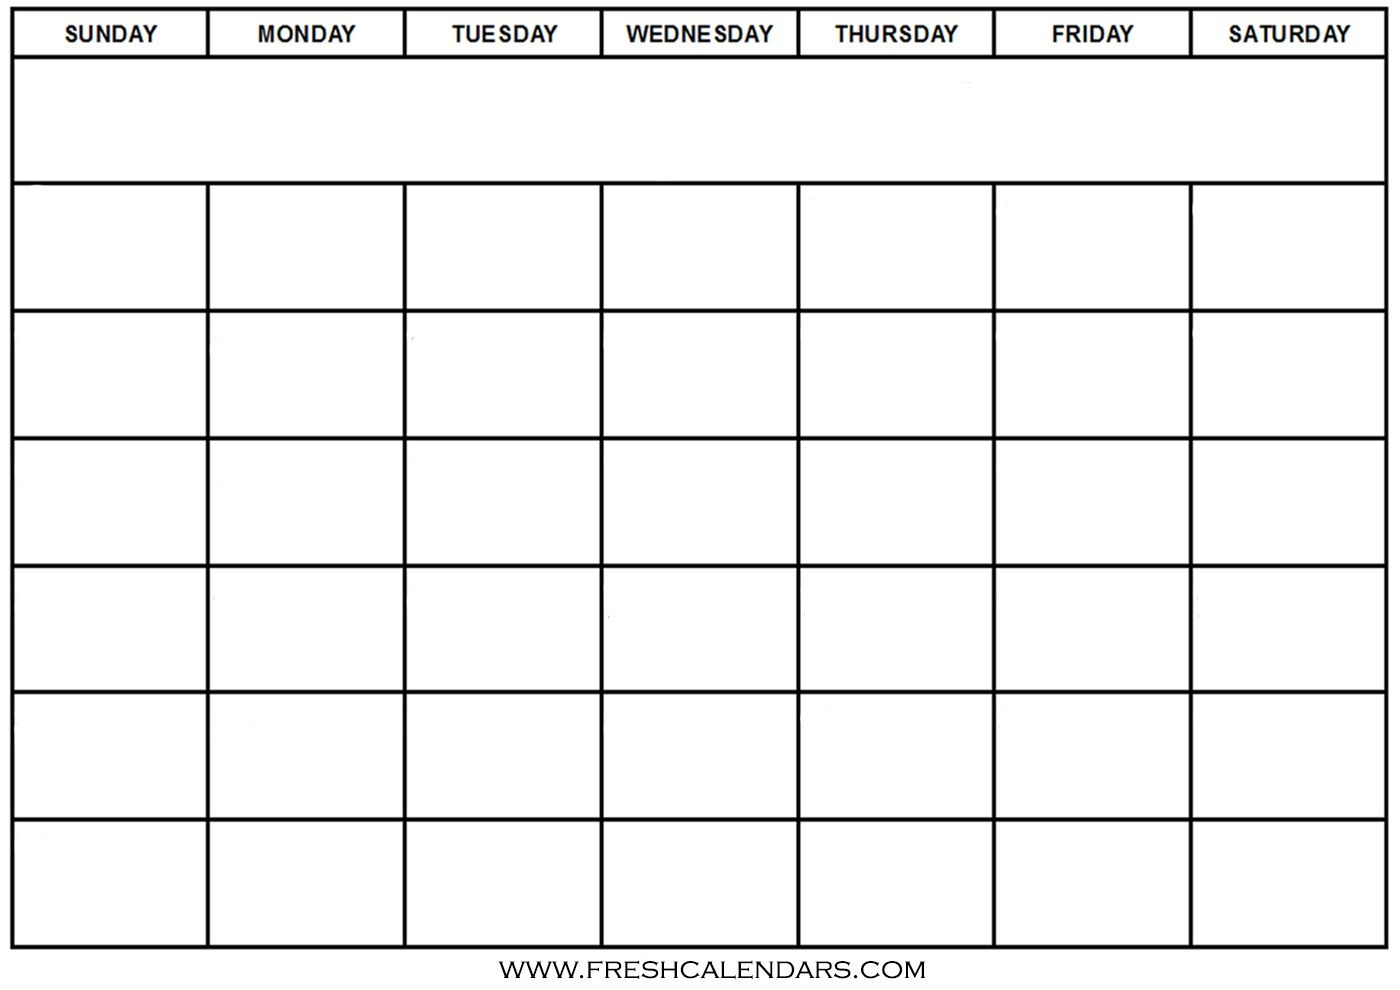 Free Blank Calendar Template | Isacl